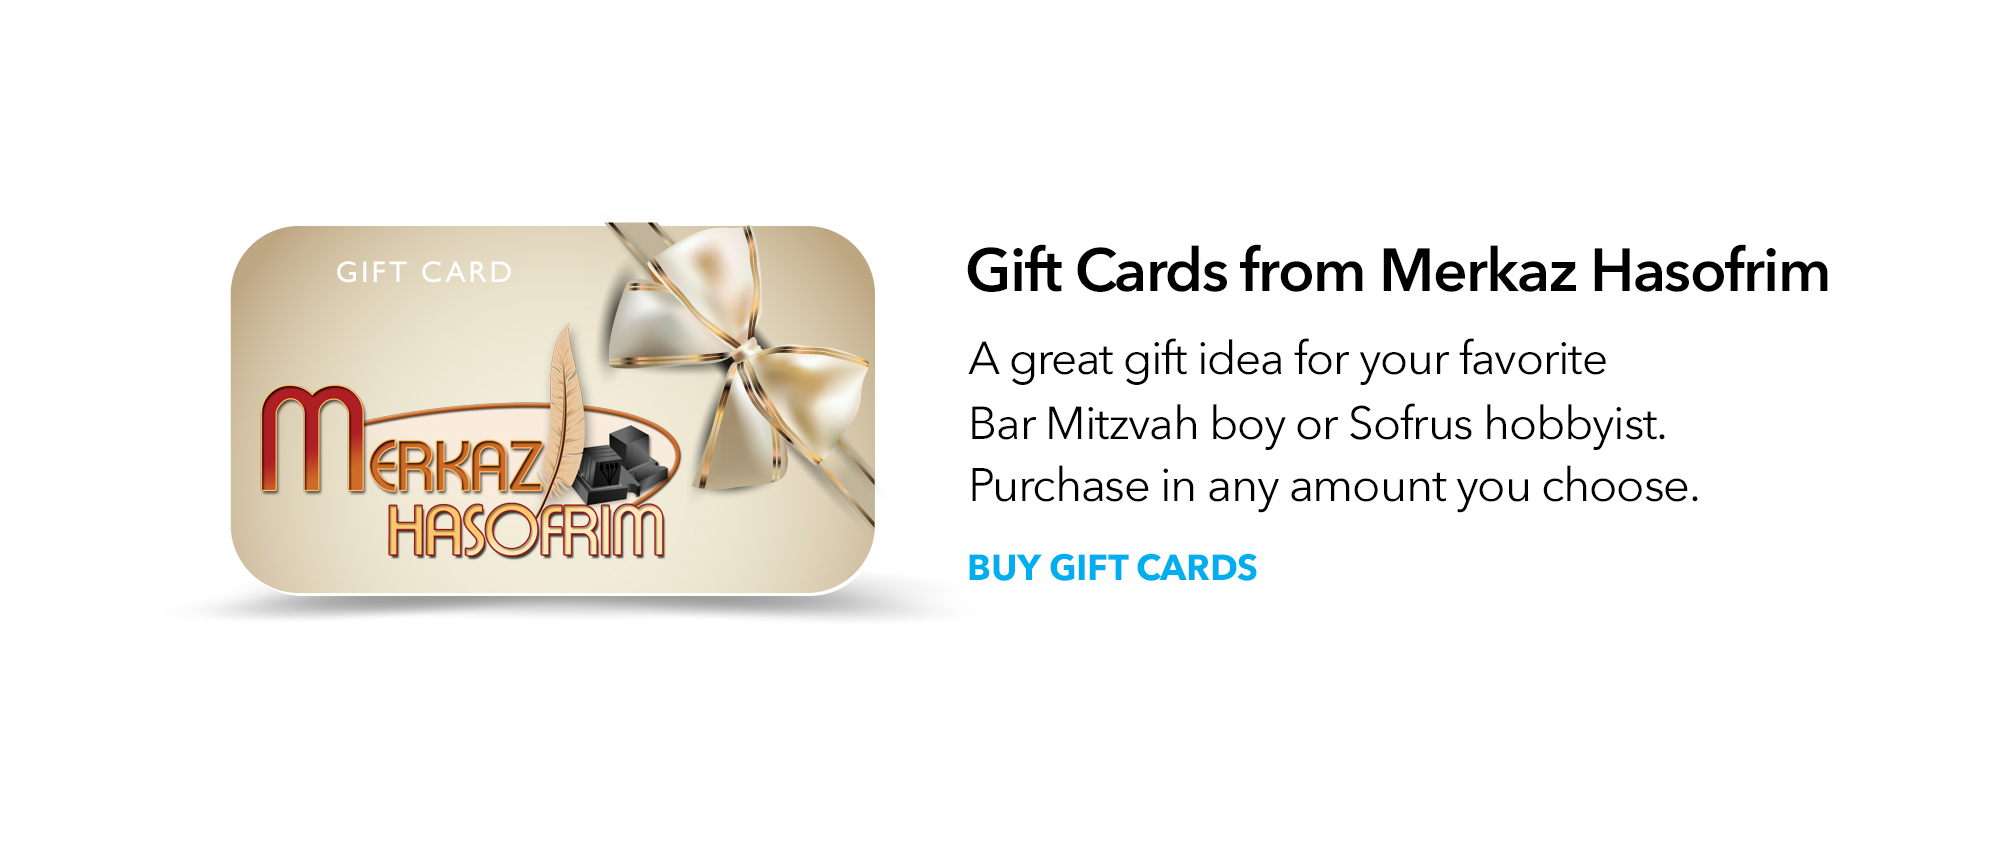 Merkaz gift cards are available in any amount you choose.